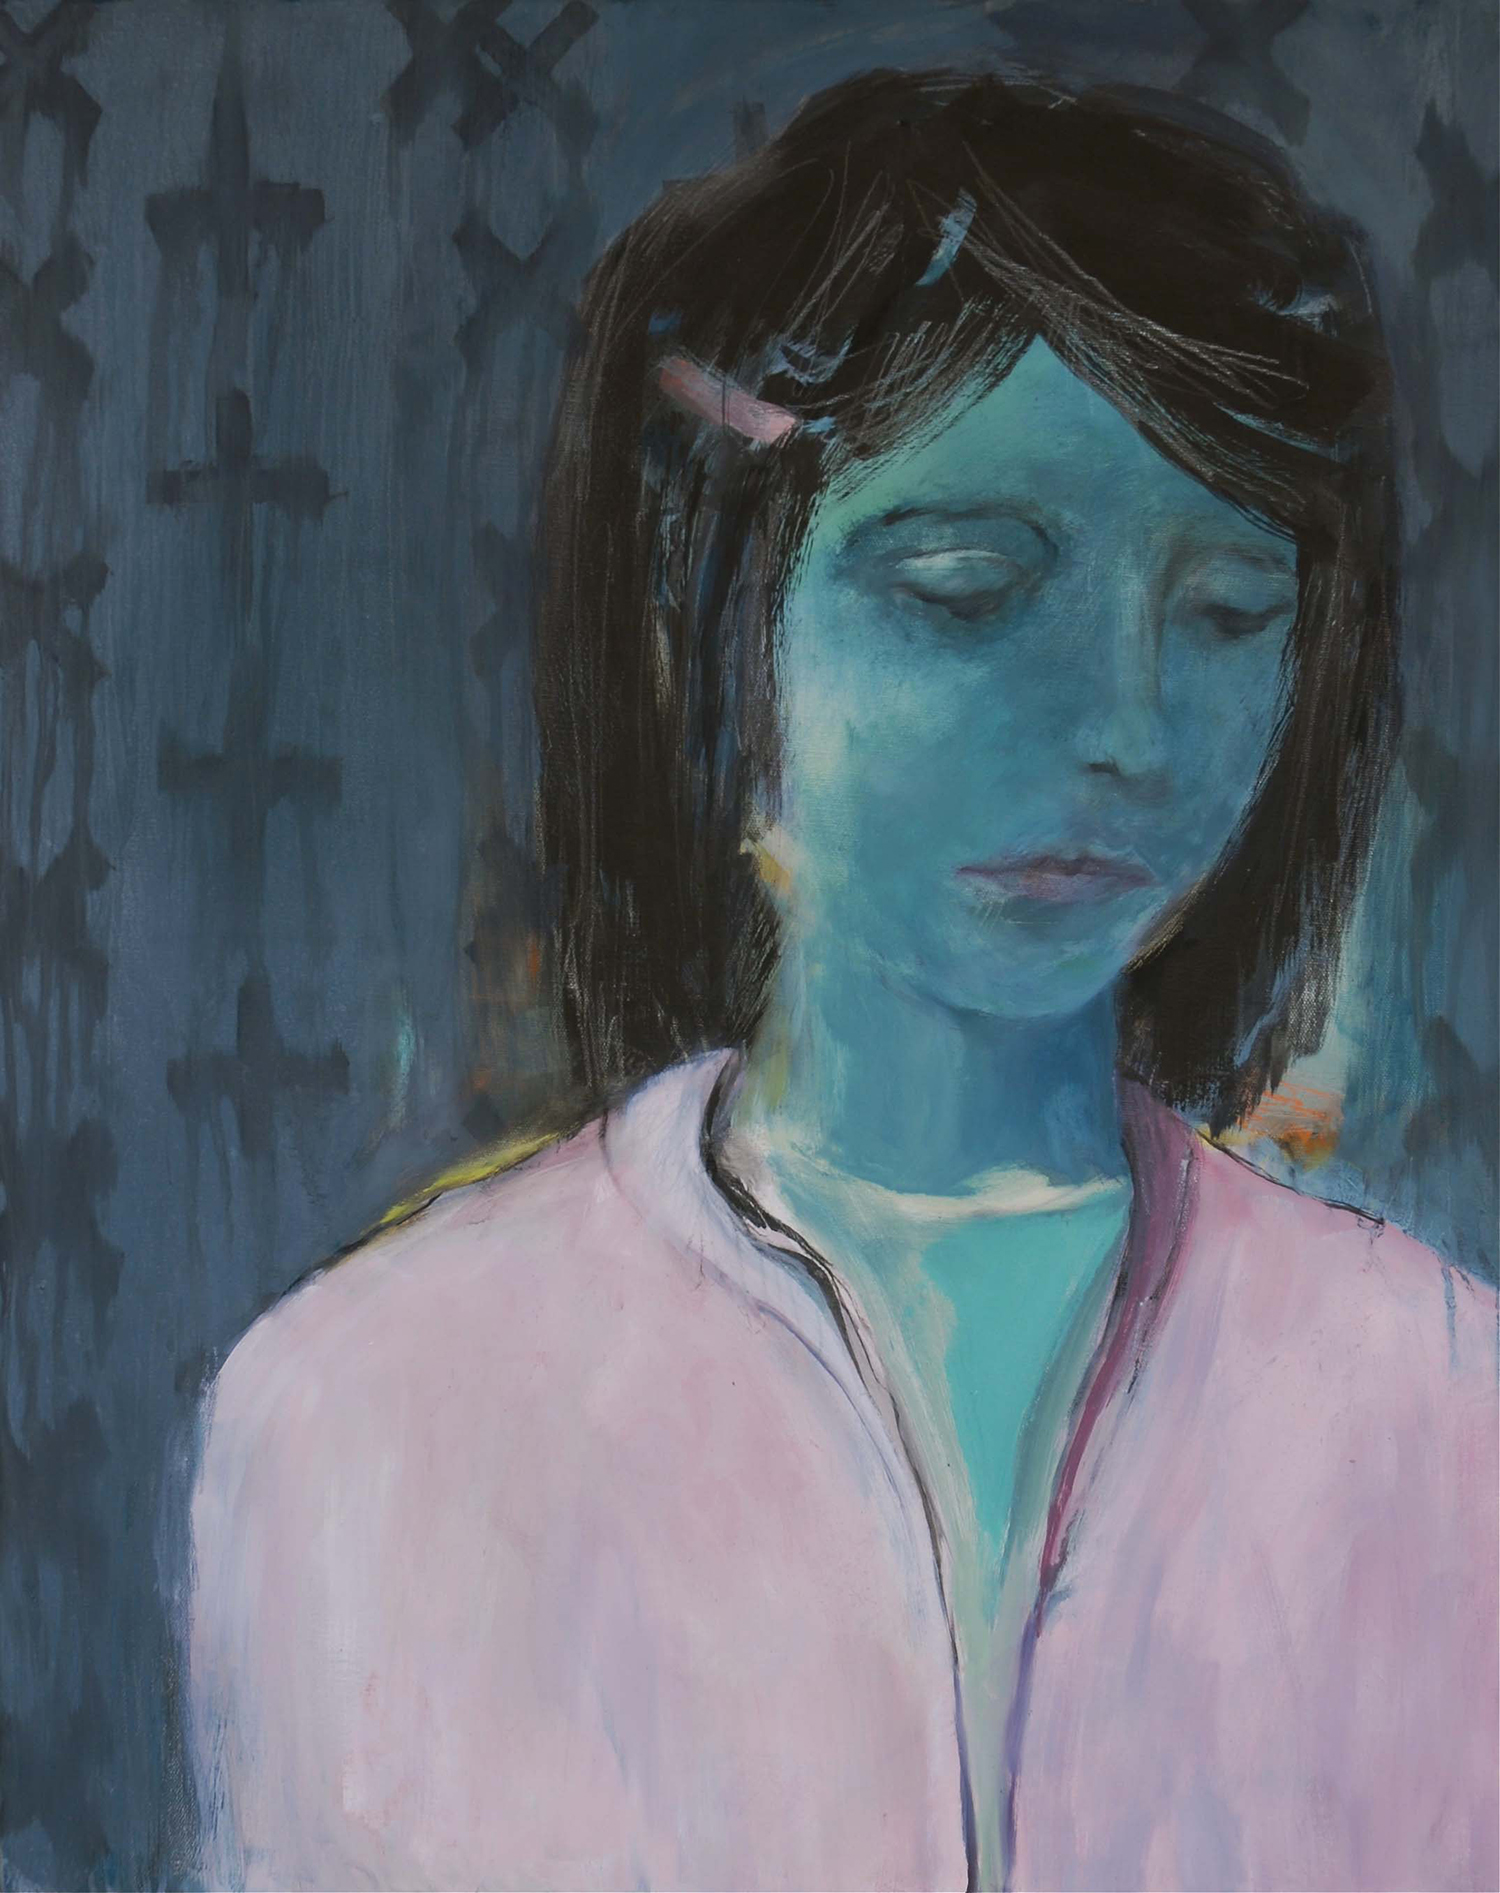 GIRL IN A PINK BLOUSE